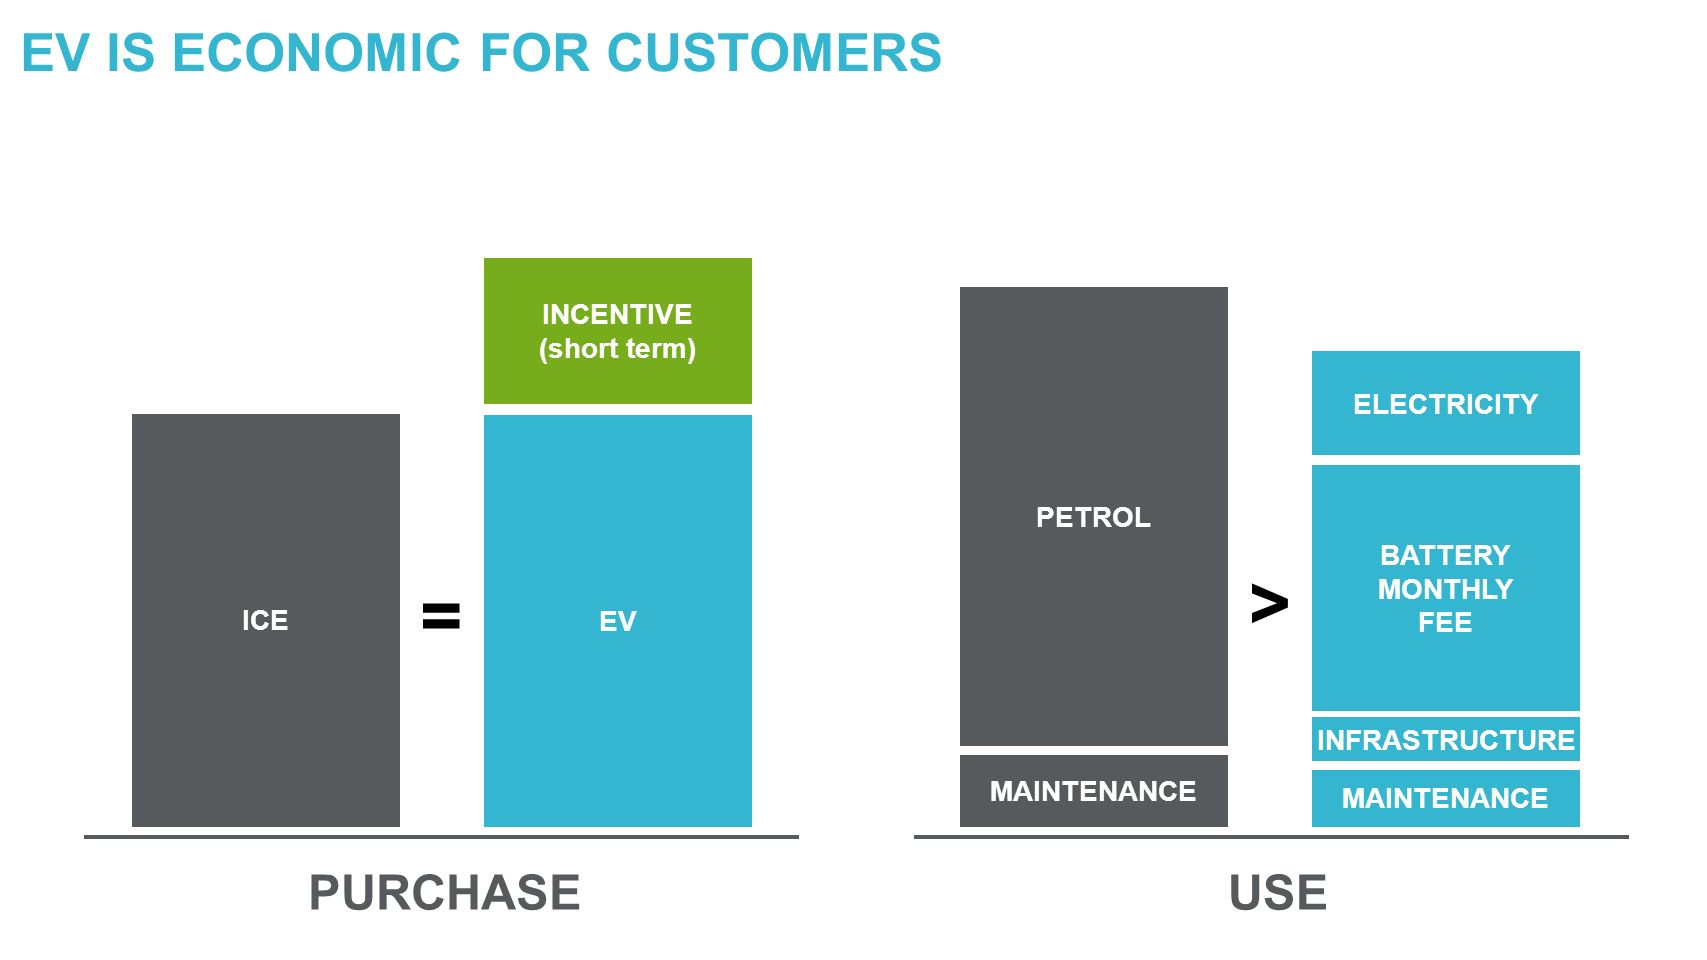 ICE EV INCENTIVE (short term) MAINTENANCE PETROL INFRASTRUCTURE BATTERY MONTHLY FEE ELECTRICITY PURCHASEUSE = > EV IS ECONOMIC FOR CUSTOMERS